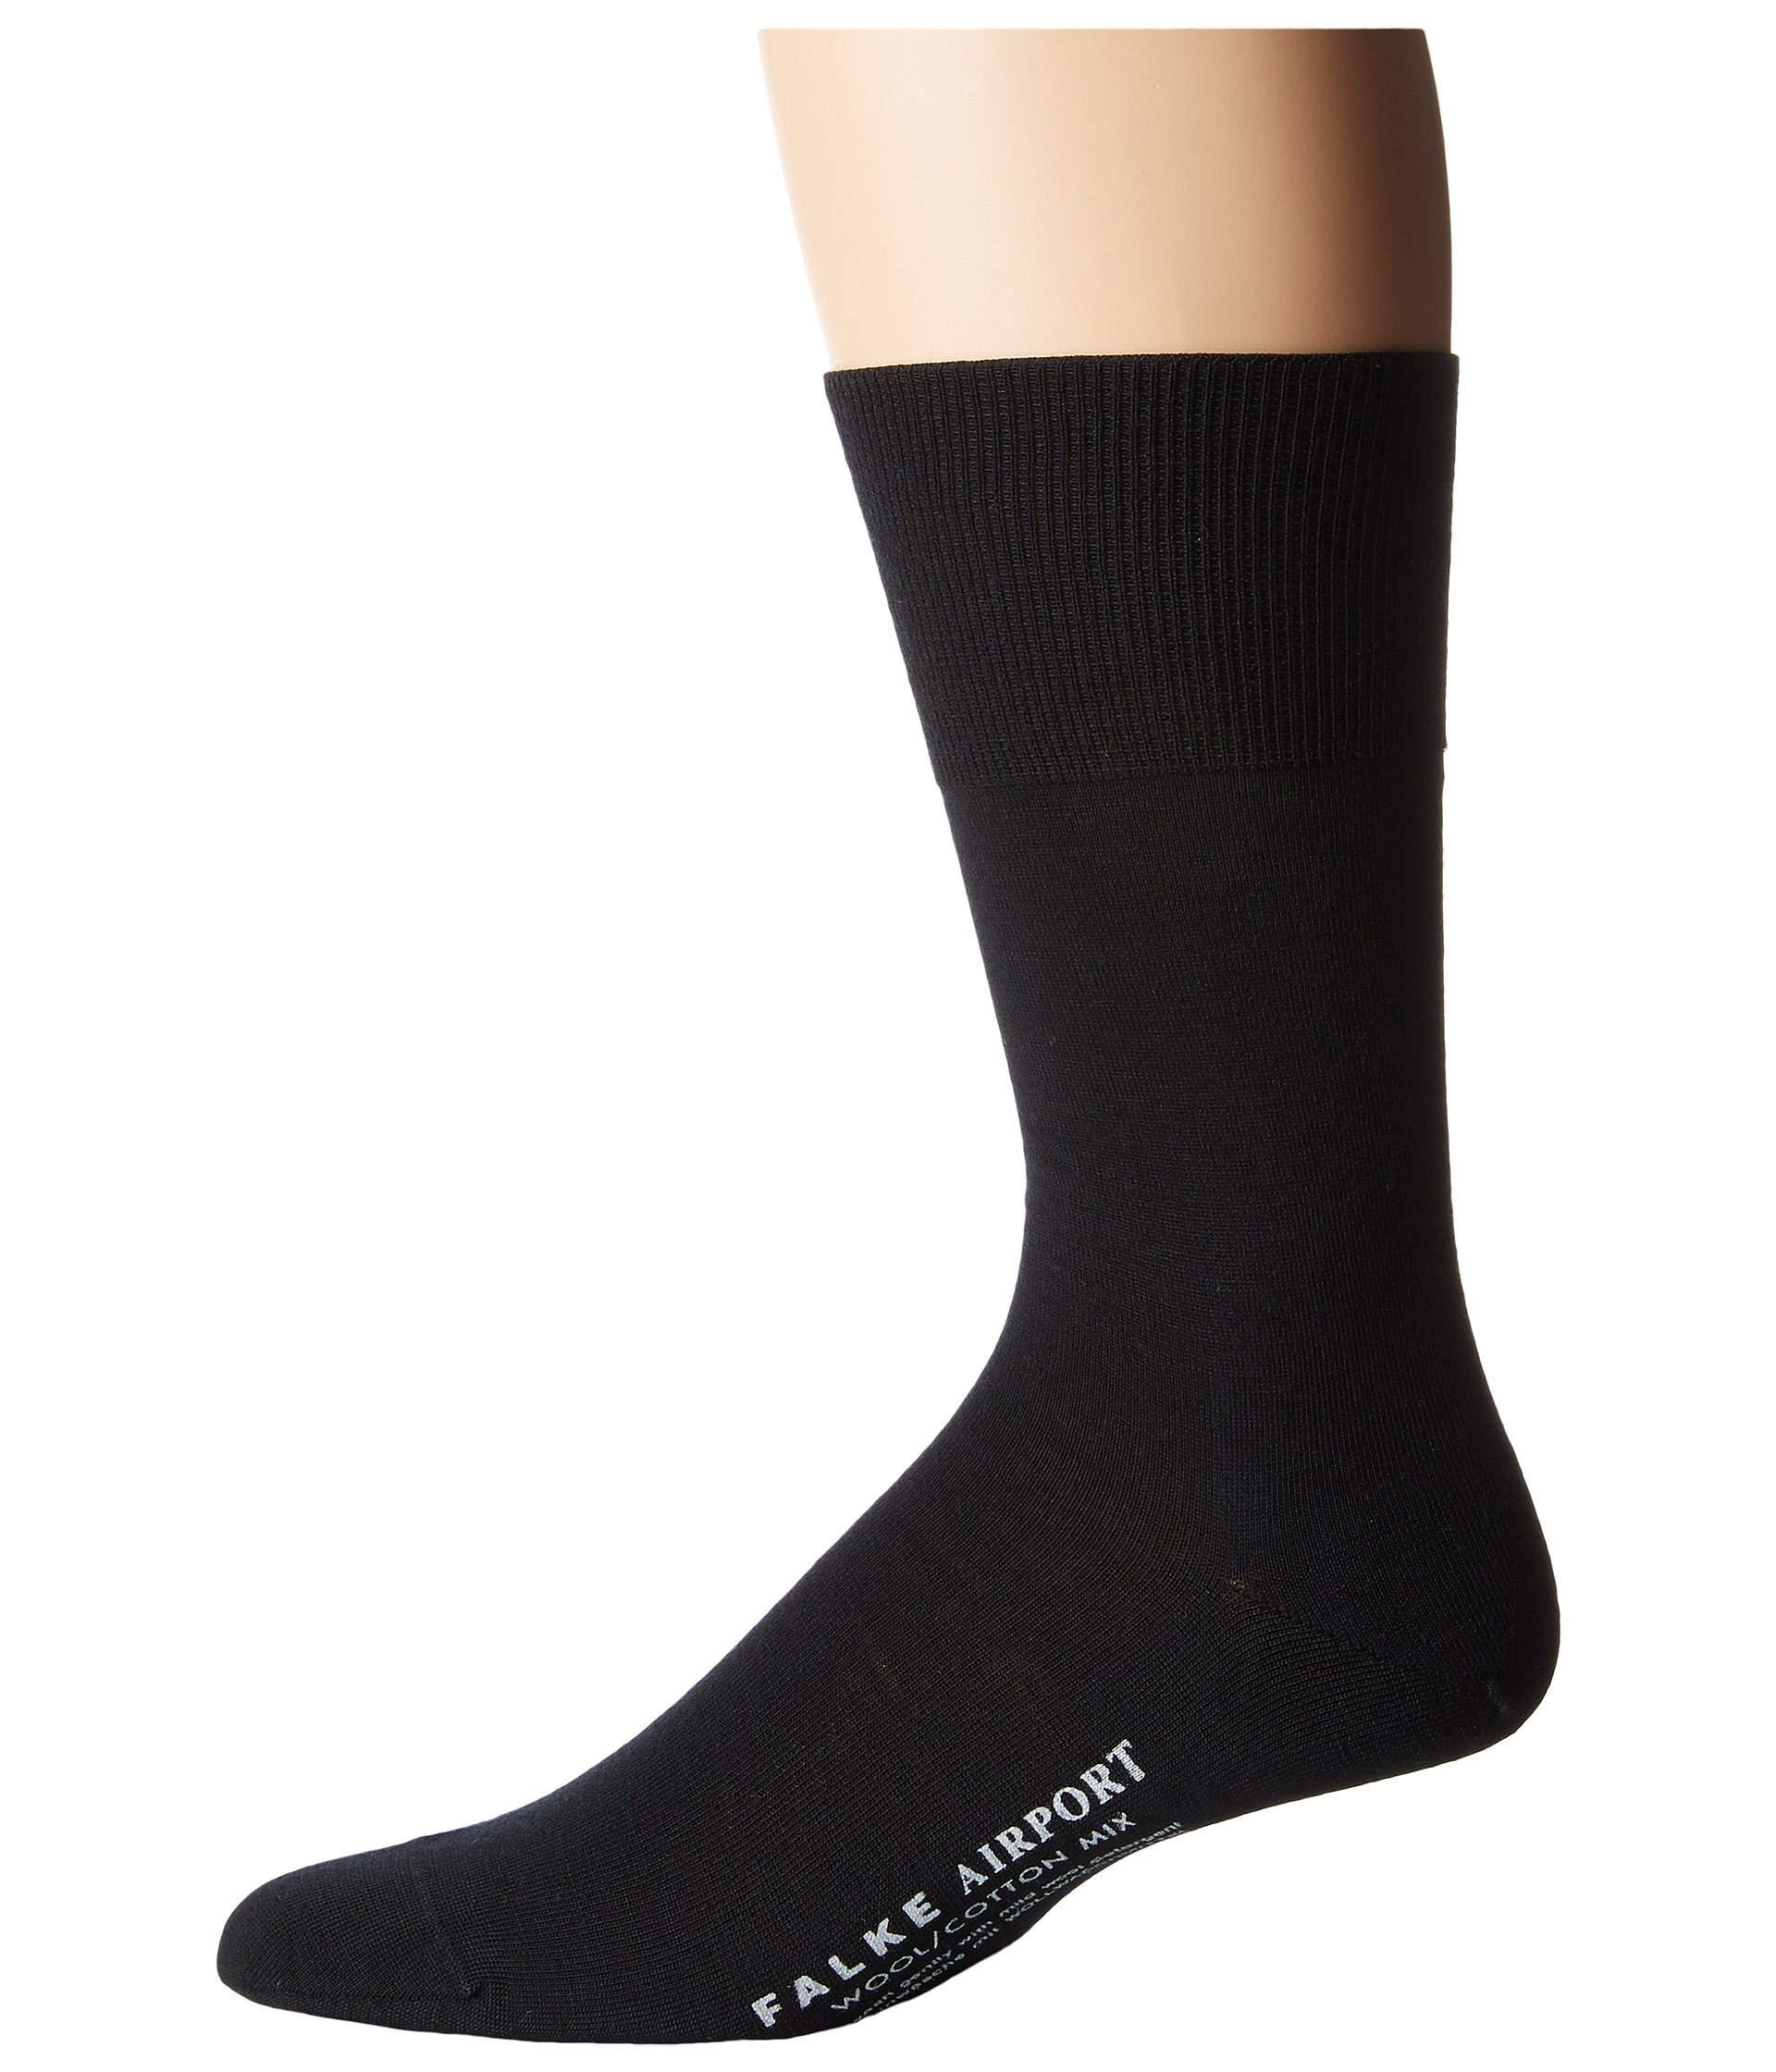 Socks & underwear for men Menswear can sometimes feel a little limiting when it comes to fashion. Say goodbye to boring colors, minimum patterns and zero personality when you shop the sock and underwear collections at Happy Socks.